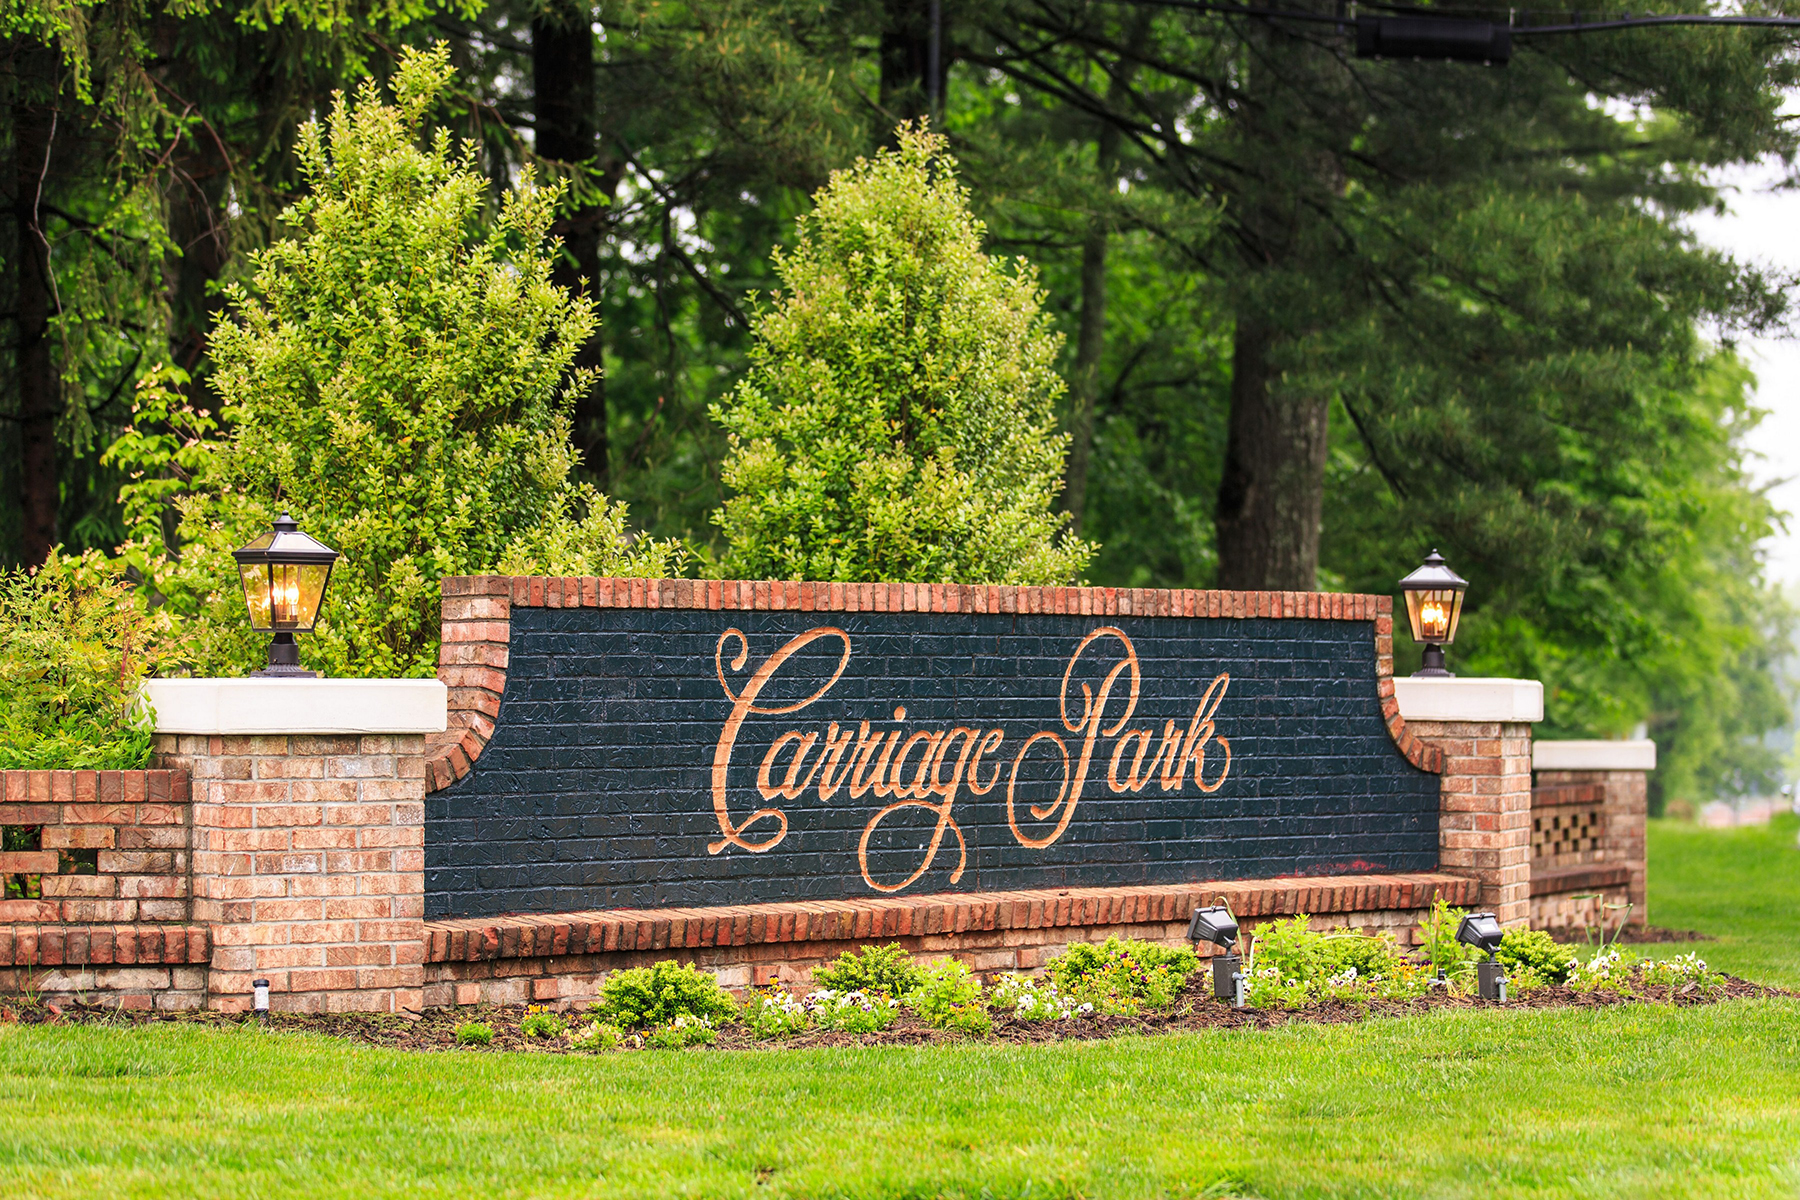 Land for Sale at CARRIAGE PARK 2410 Carriage Summit Way Hendersonville, North Carolina 28791 United States